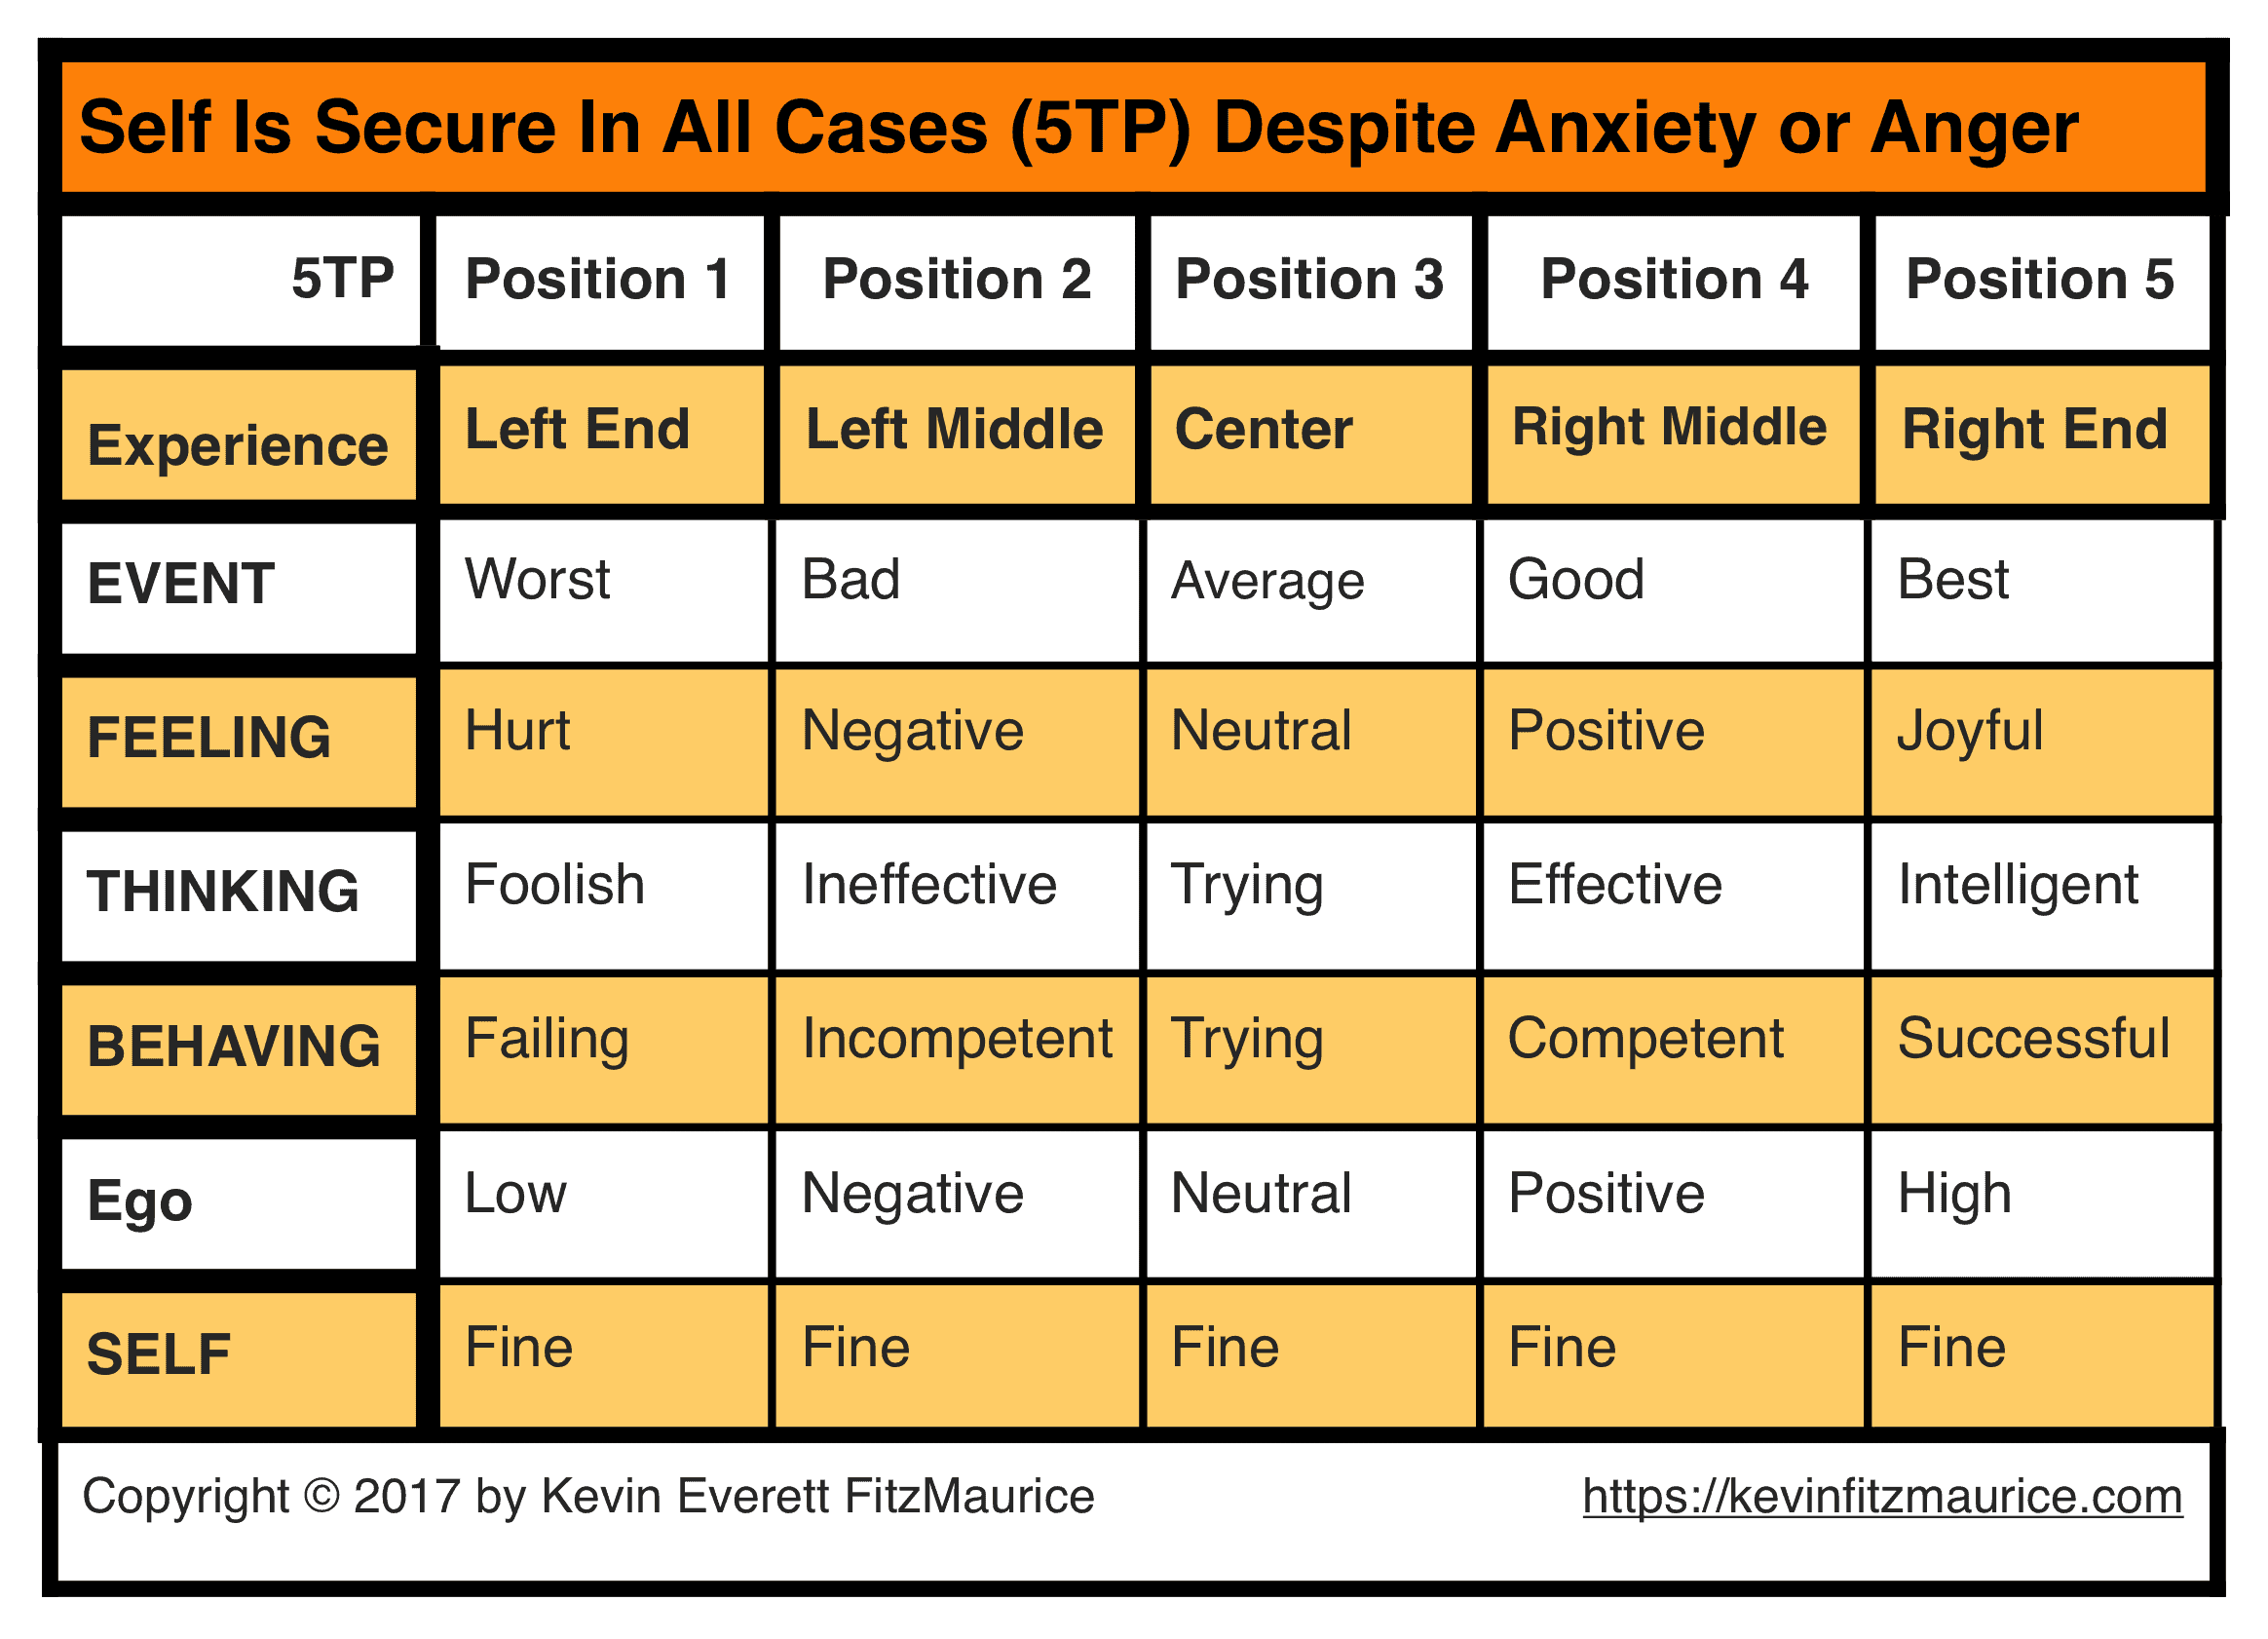 5TP Showing Self Is Immune to Anxiety